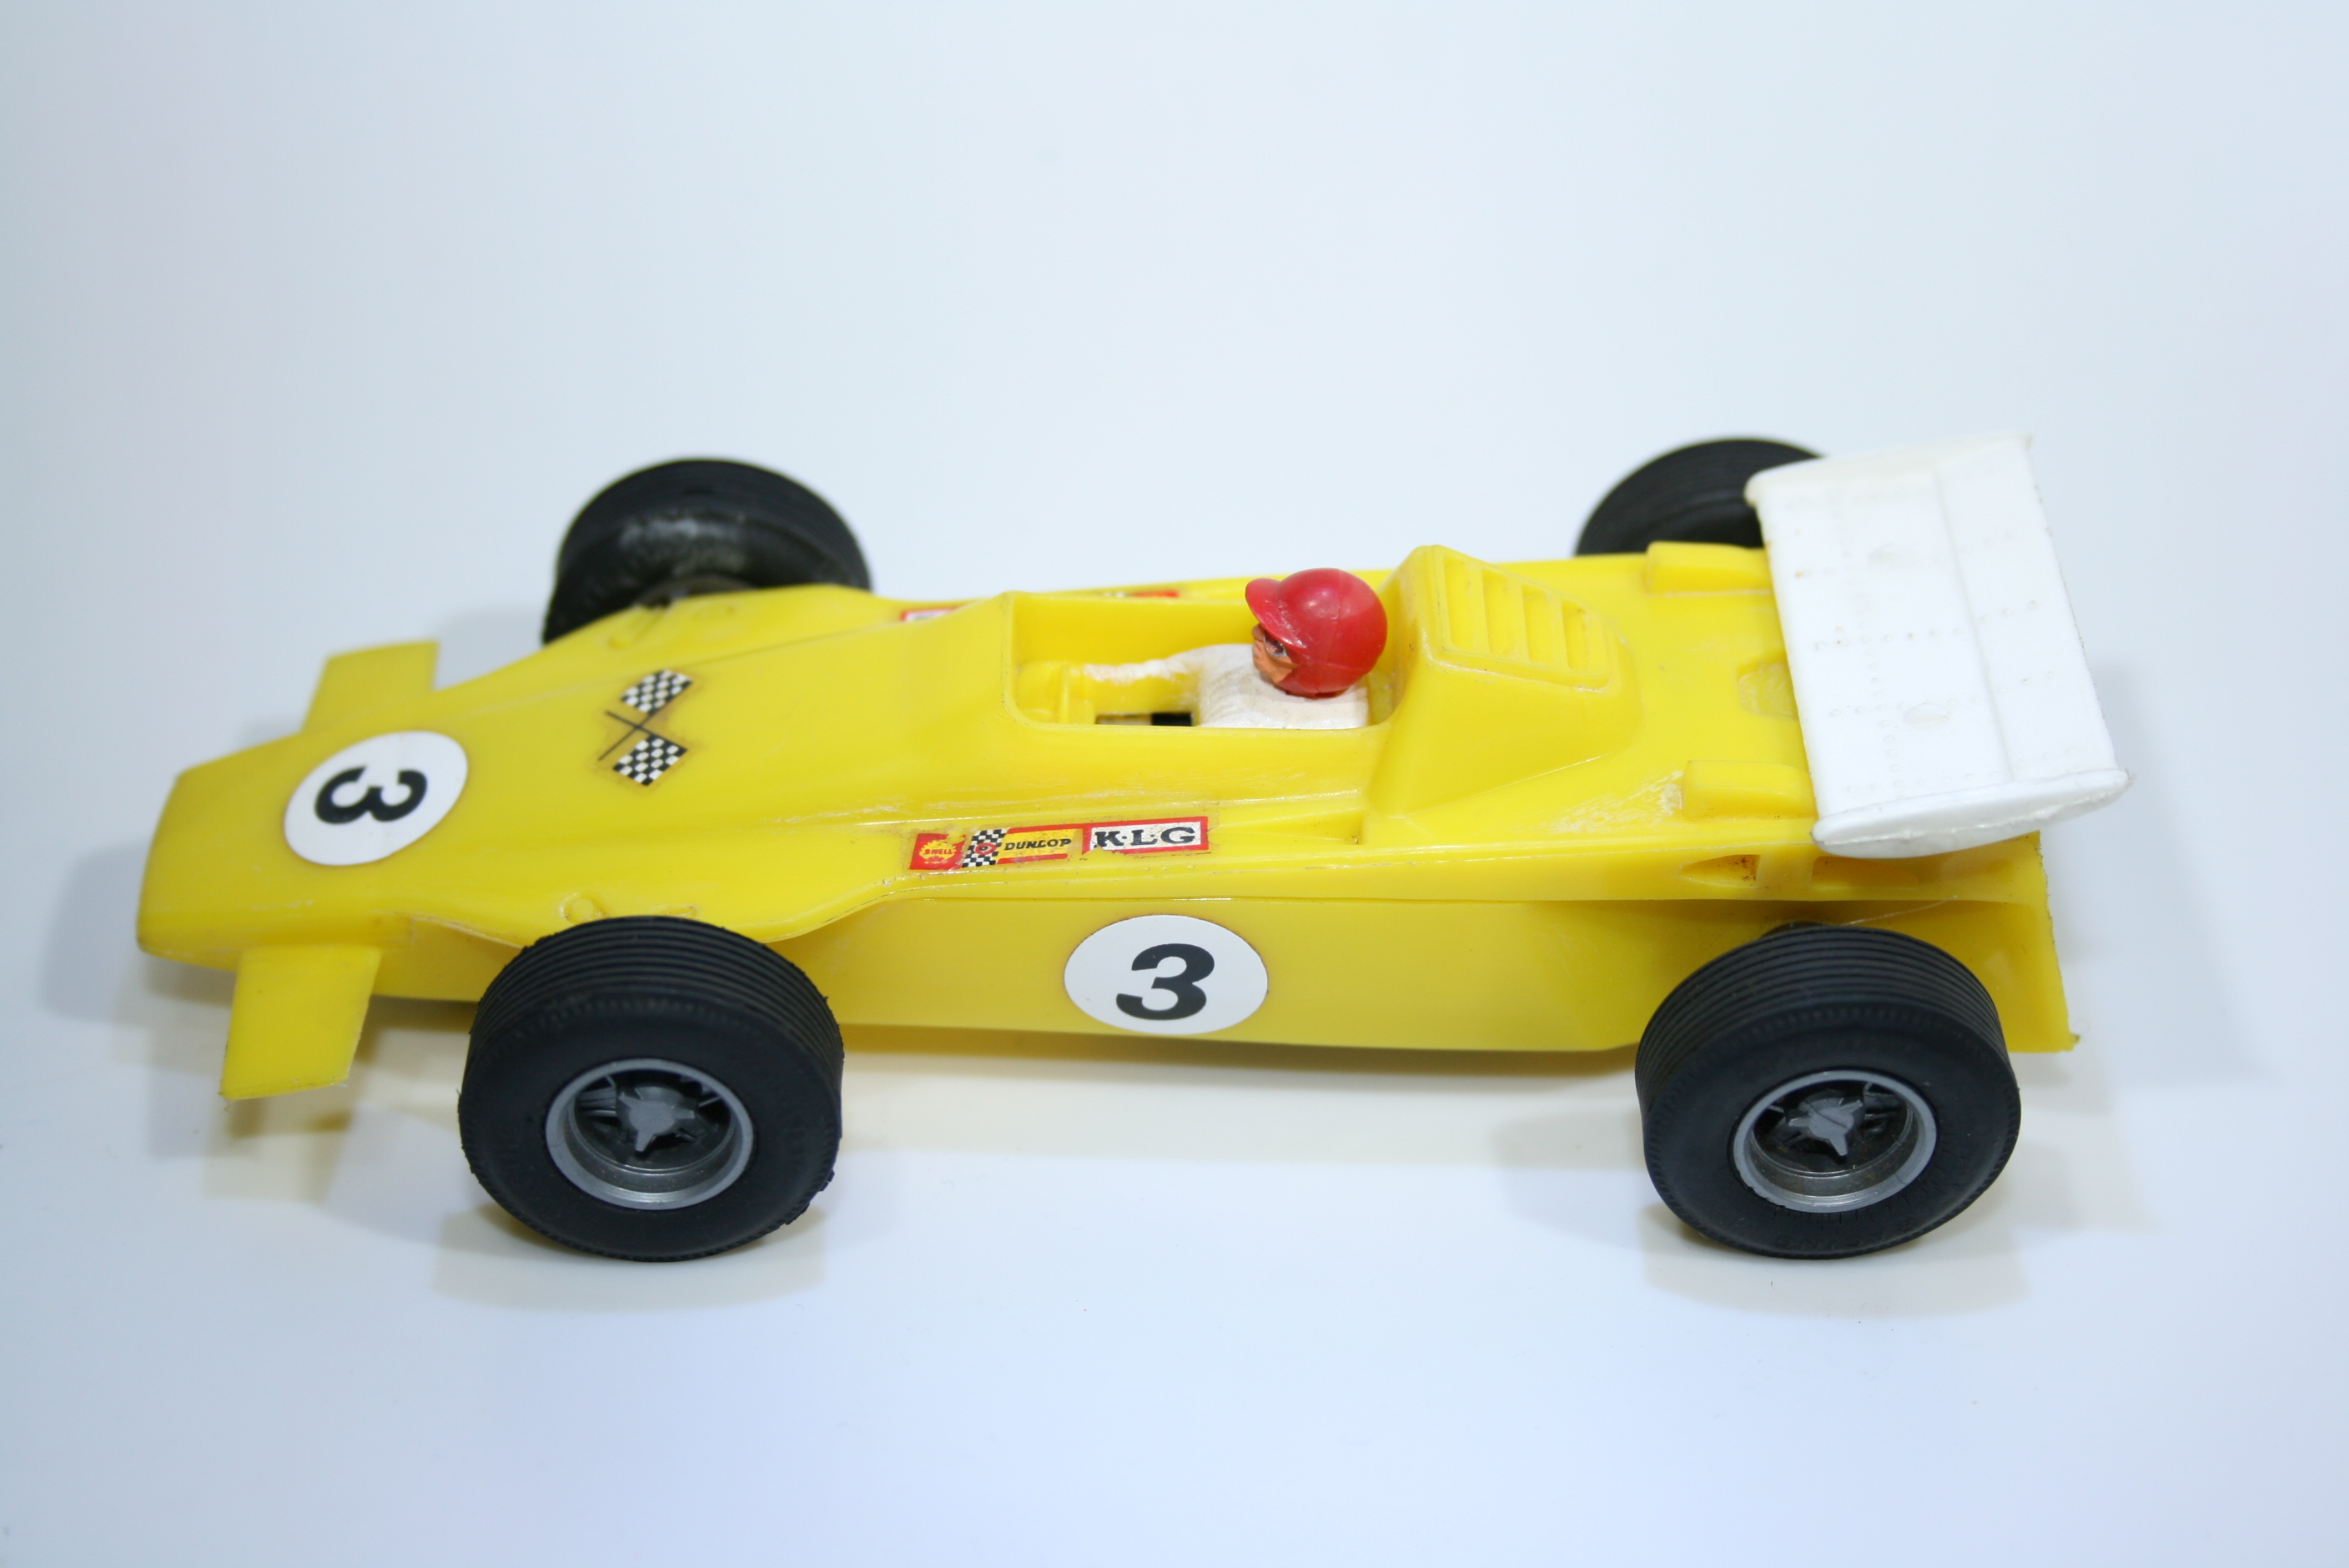 757 Lotus 56 1971 E Fittipaldi Scalextric C27 FRA 1972